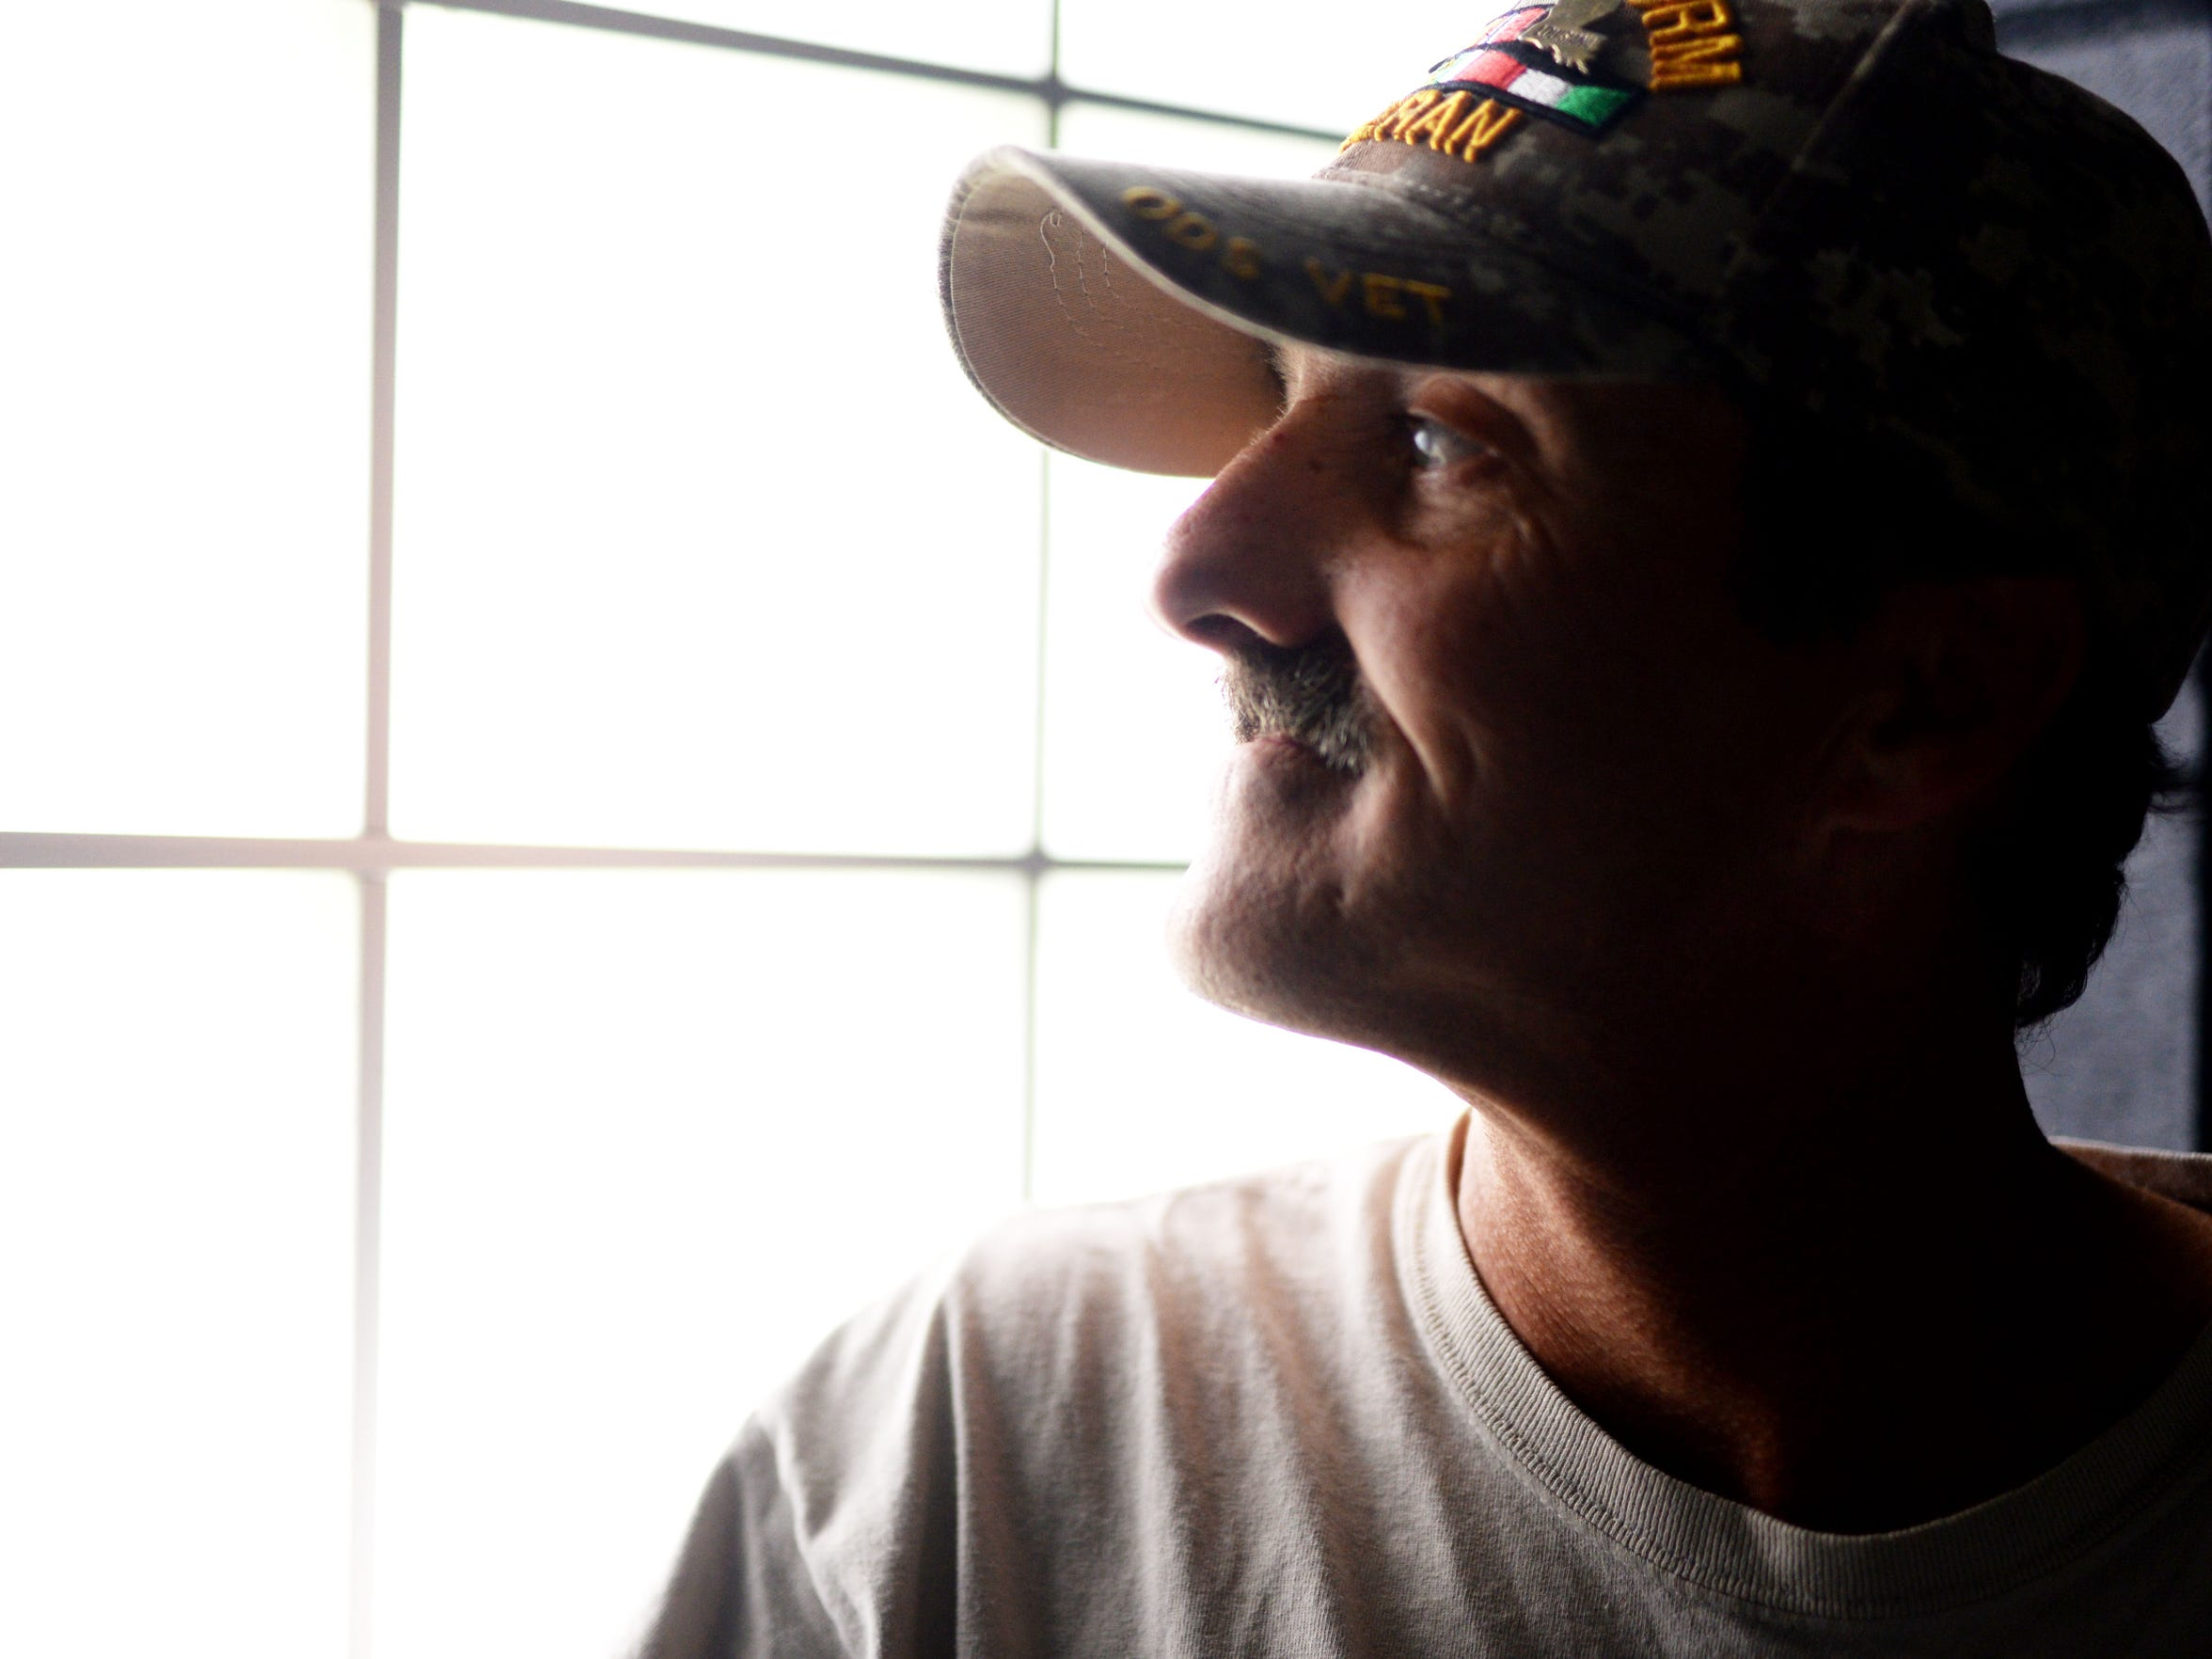 John Parker is a United States veteran who is staying at the Salvation Army in Shreveport.